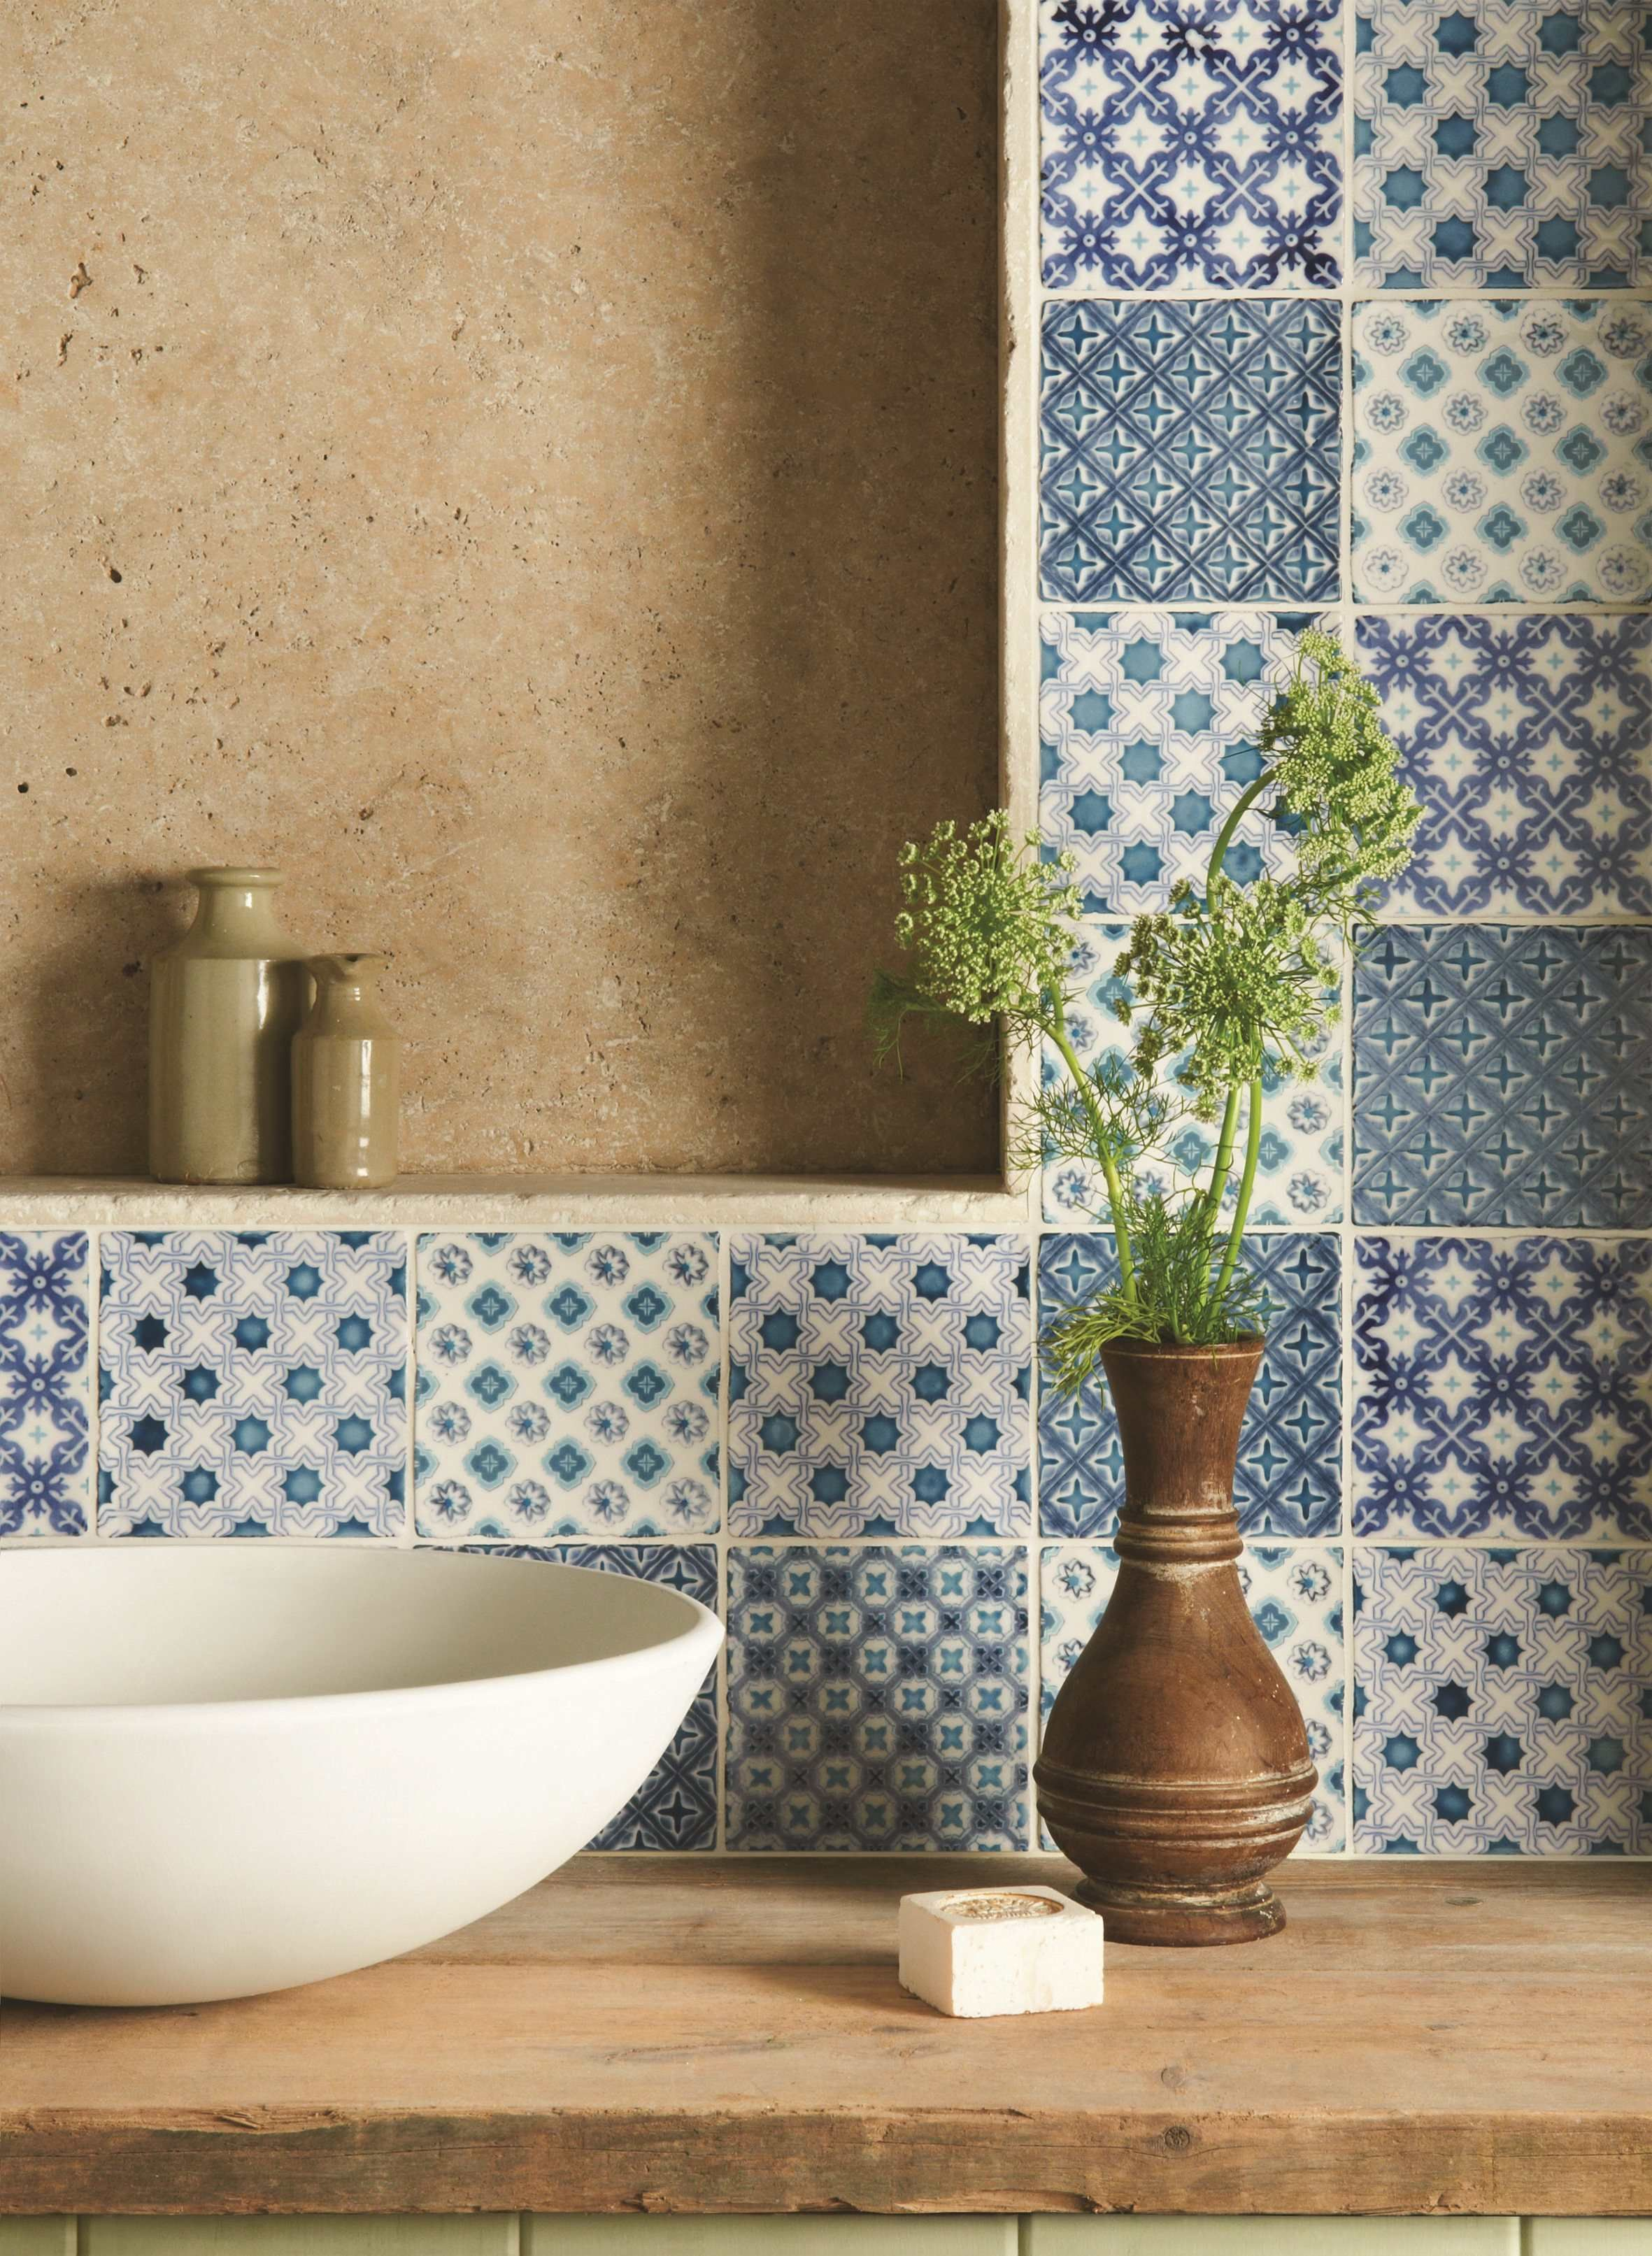 Blue and white bathroom floor tiles - A Mix Of Patchwork Blue And White Tiles Handmade Patterned Ceramic Tiles From The Chateaux